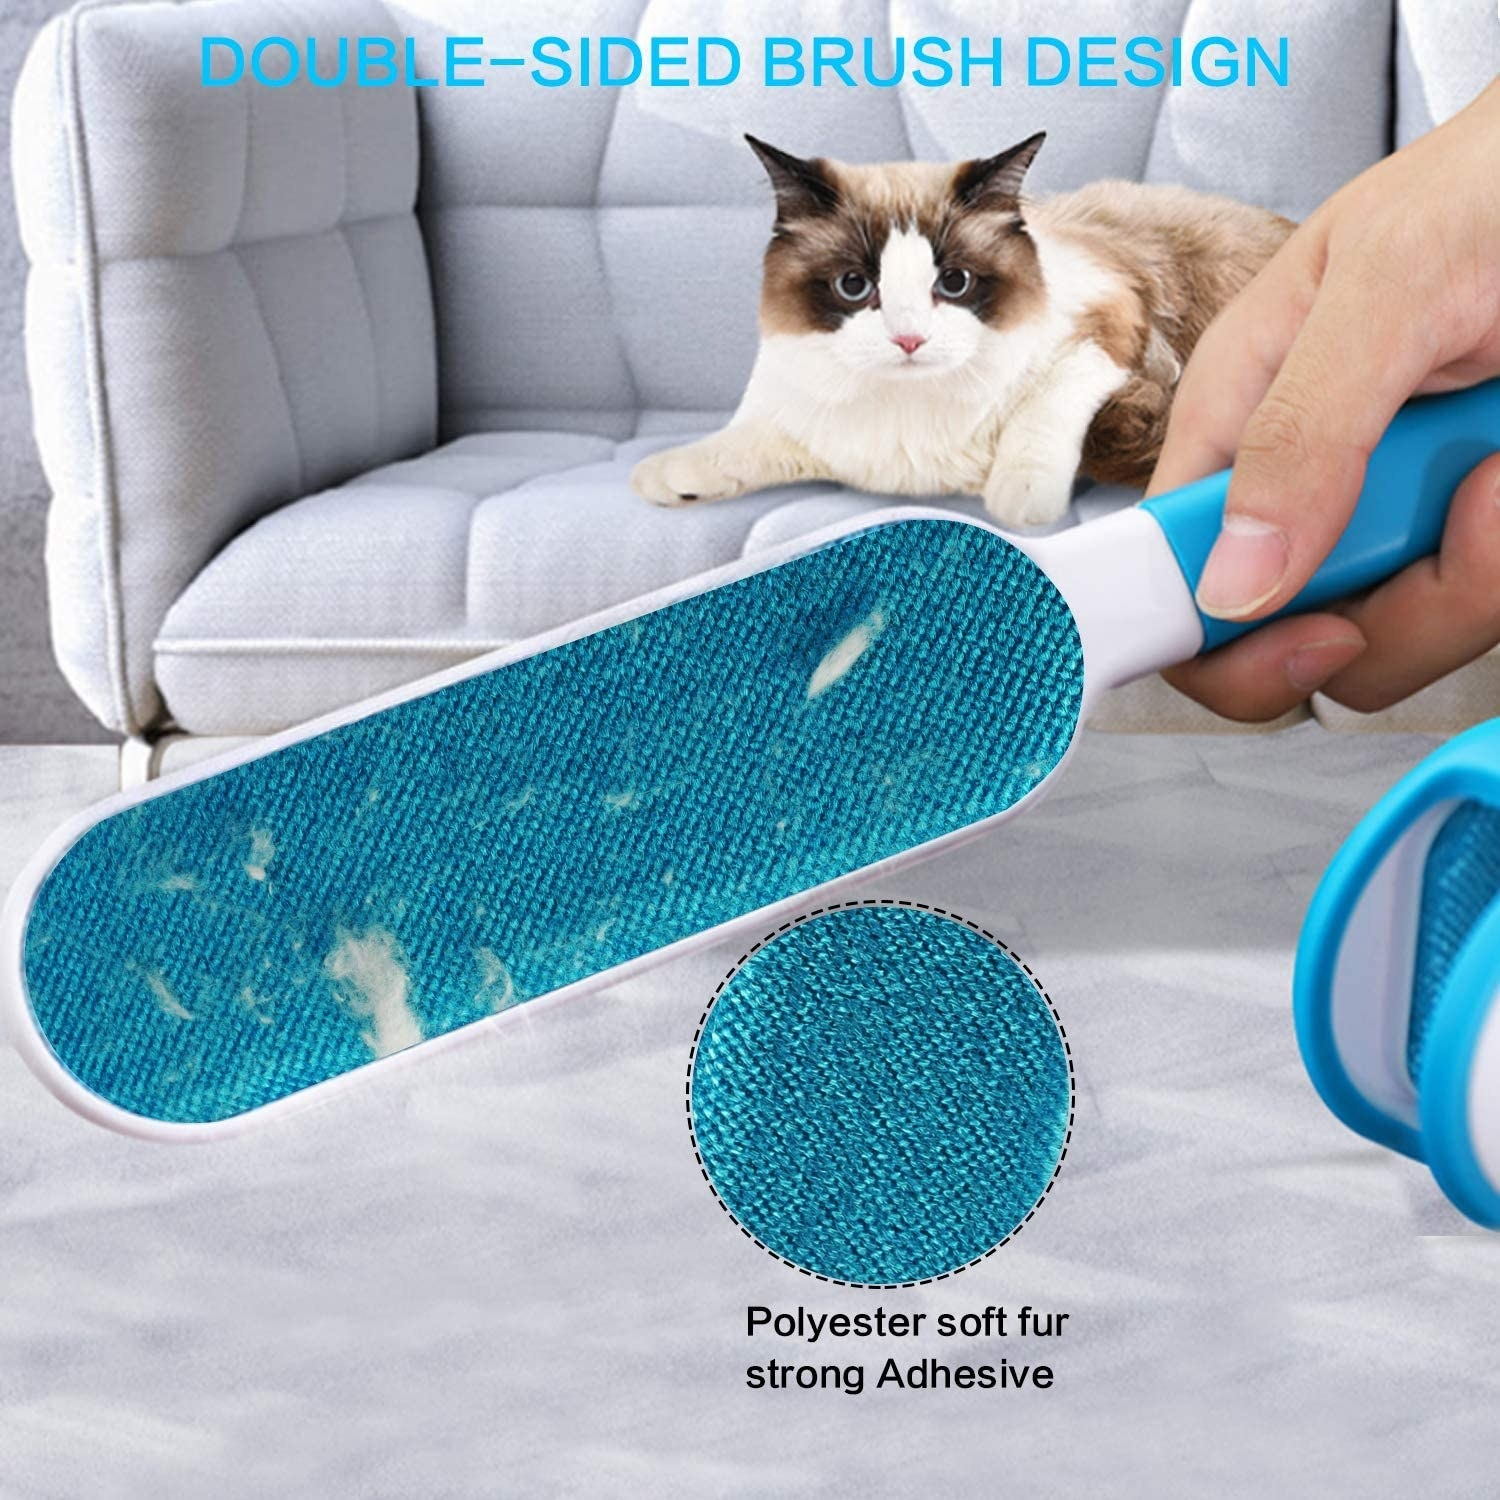 Blue wand-shaped hair removal tool picking up cat hair